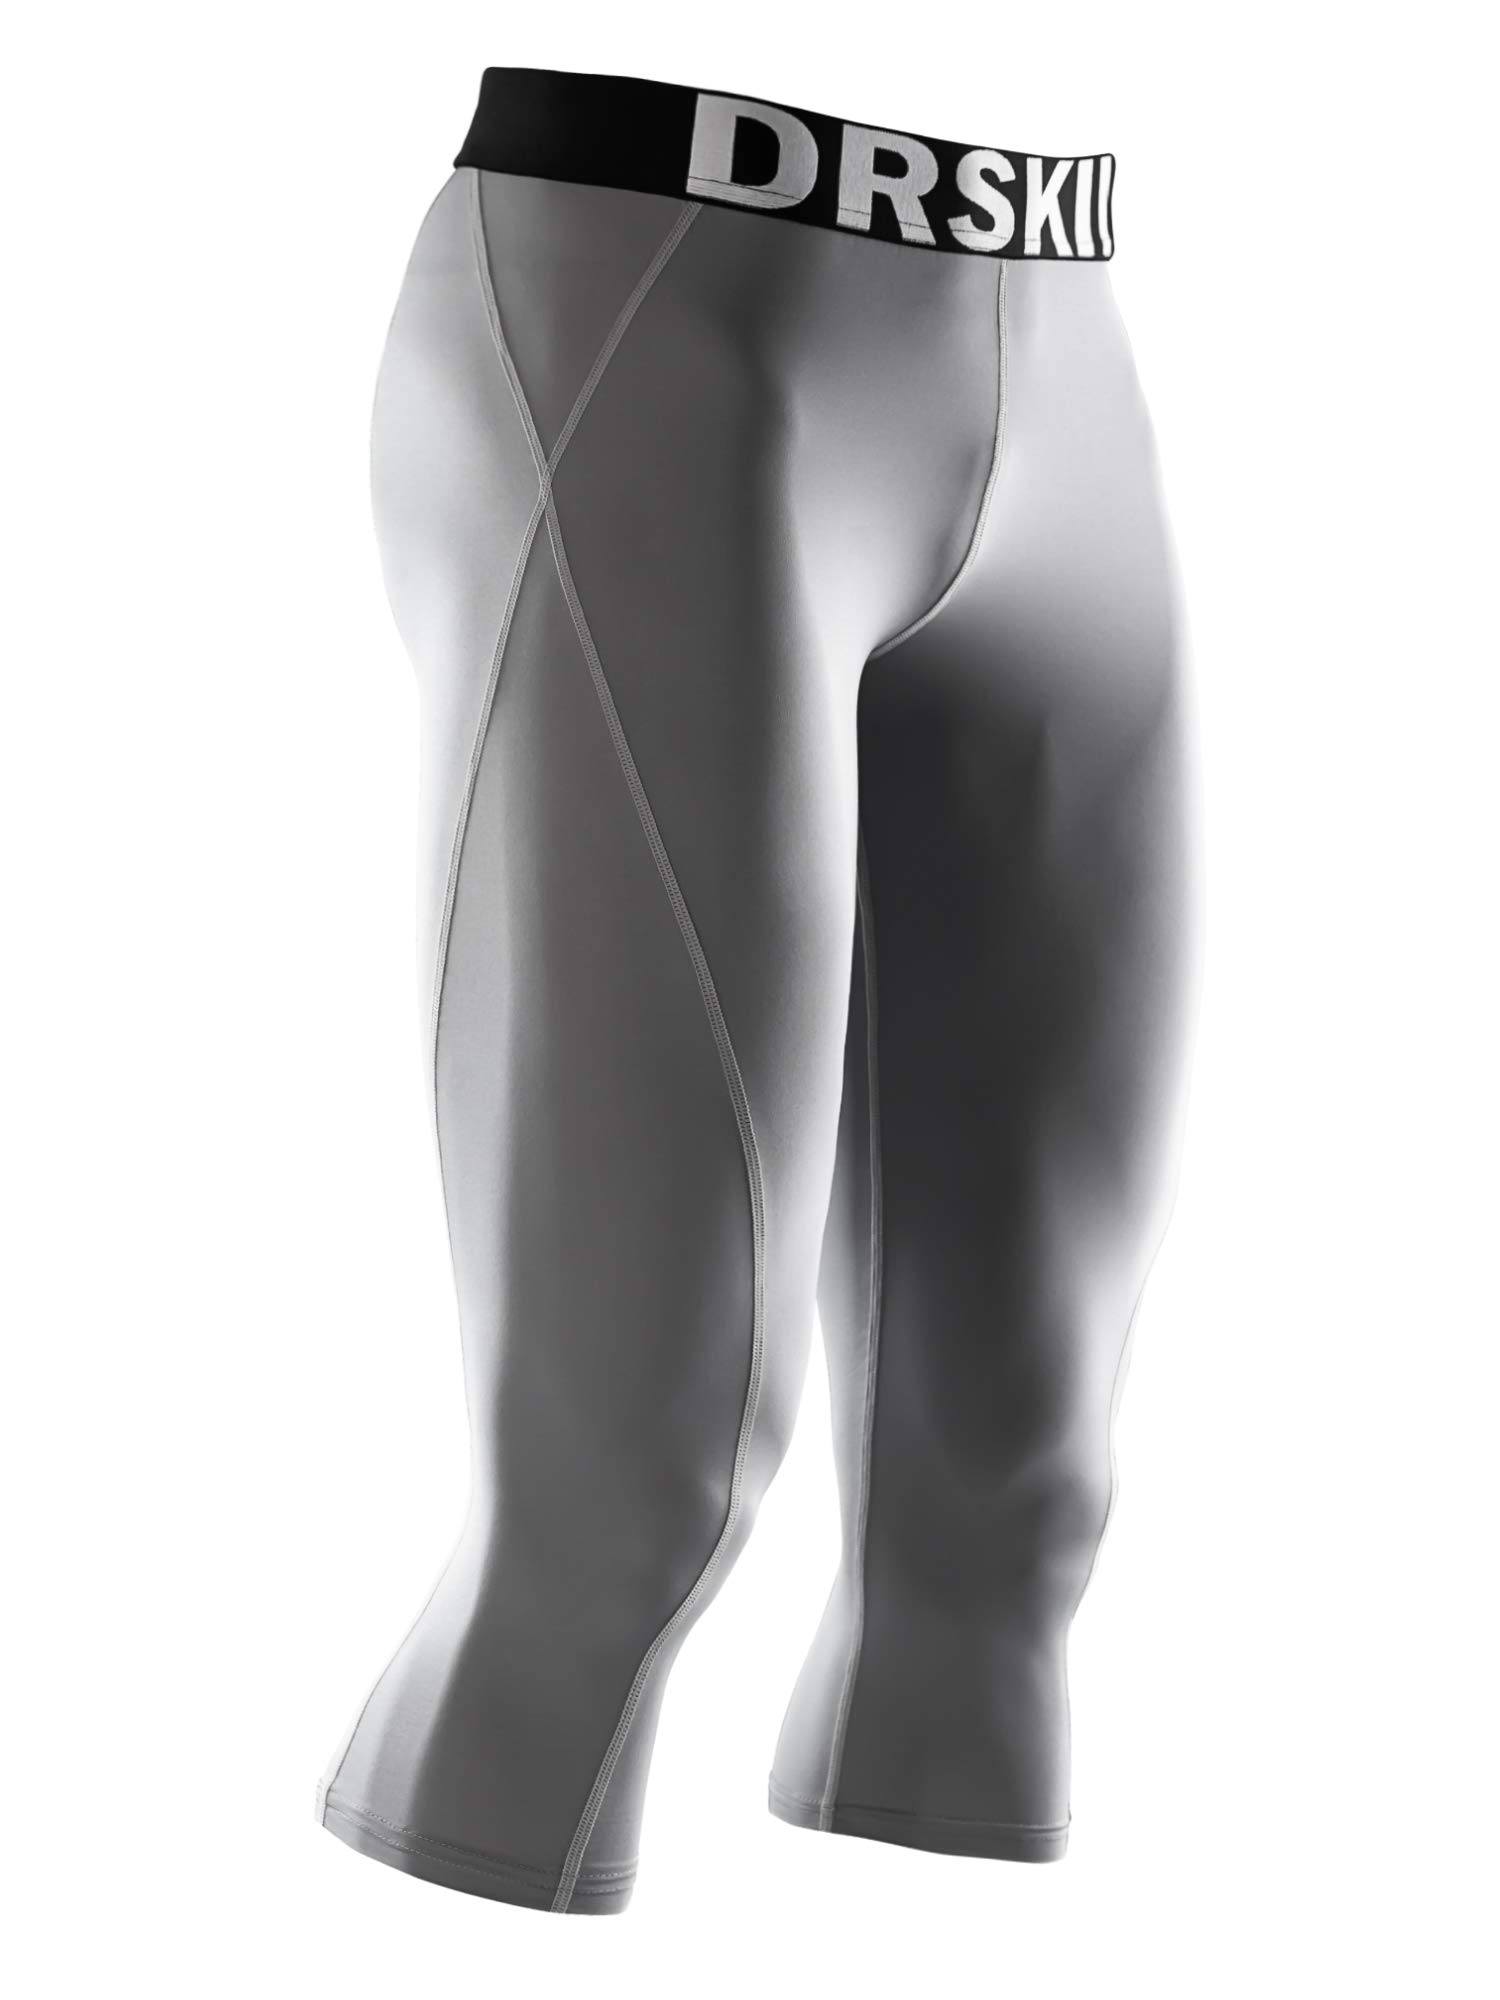 DRSKIN] Tight 3/4 Compression Pants Base Layer Running Pants Men (M, GG804) by DRSKIN